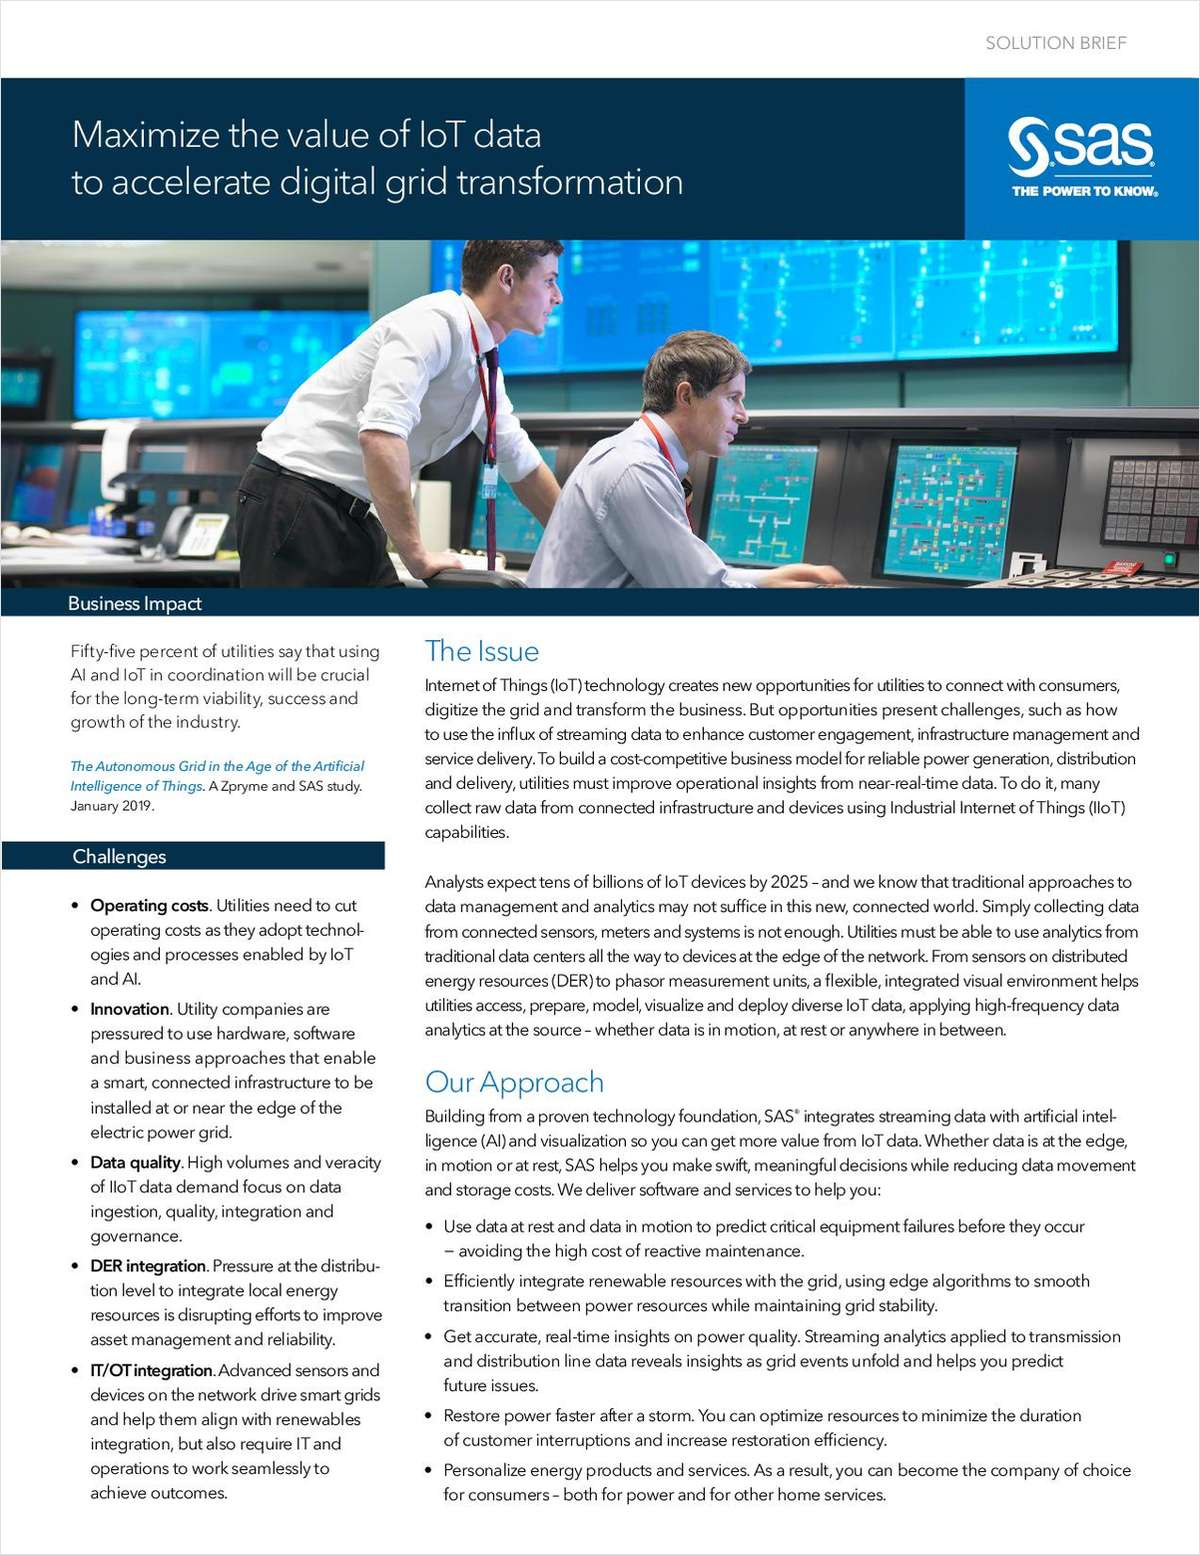 Maximize the value of IoT data to accelerate digital grid transformation